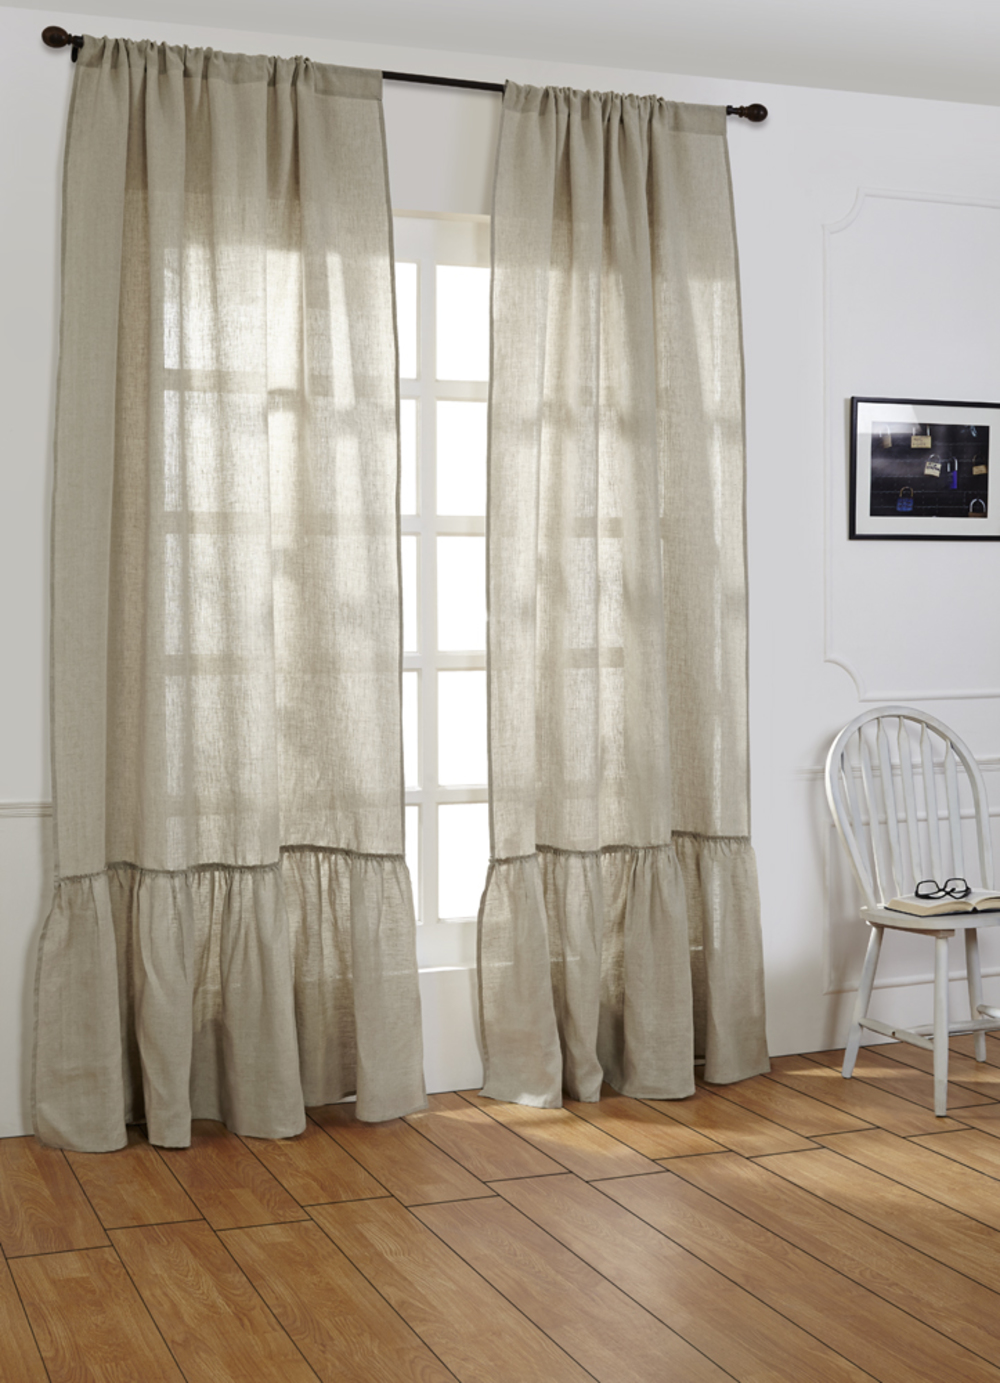 Amity Imports - Caprice Natural Linen Curtains